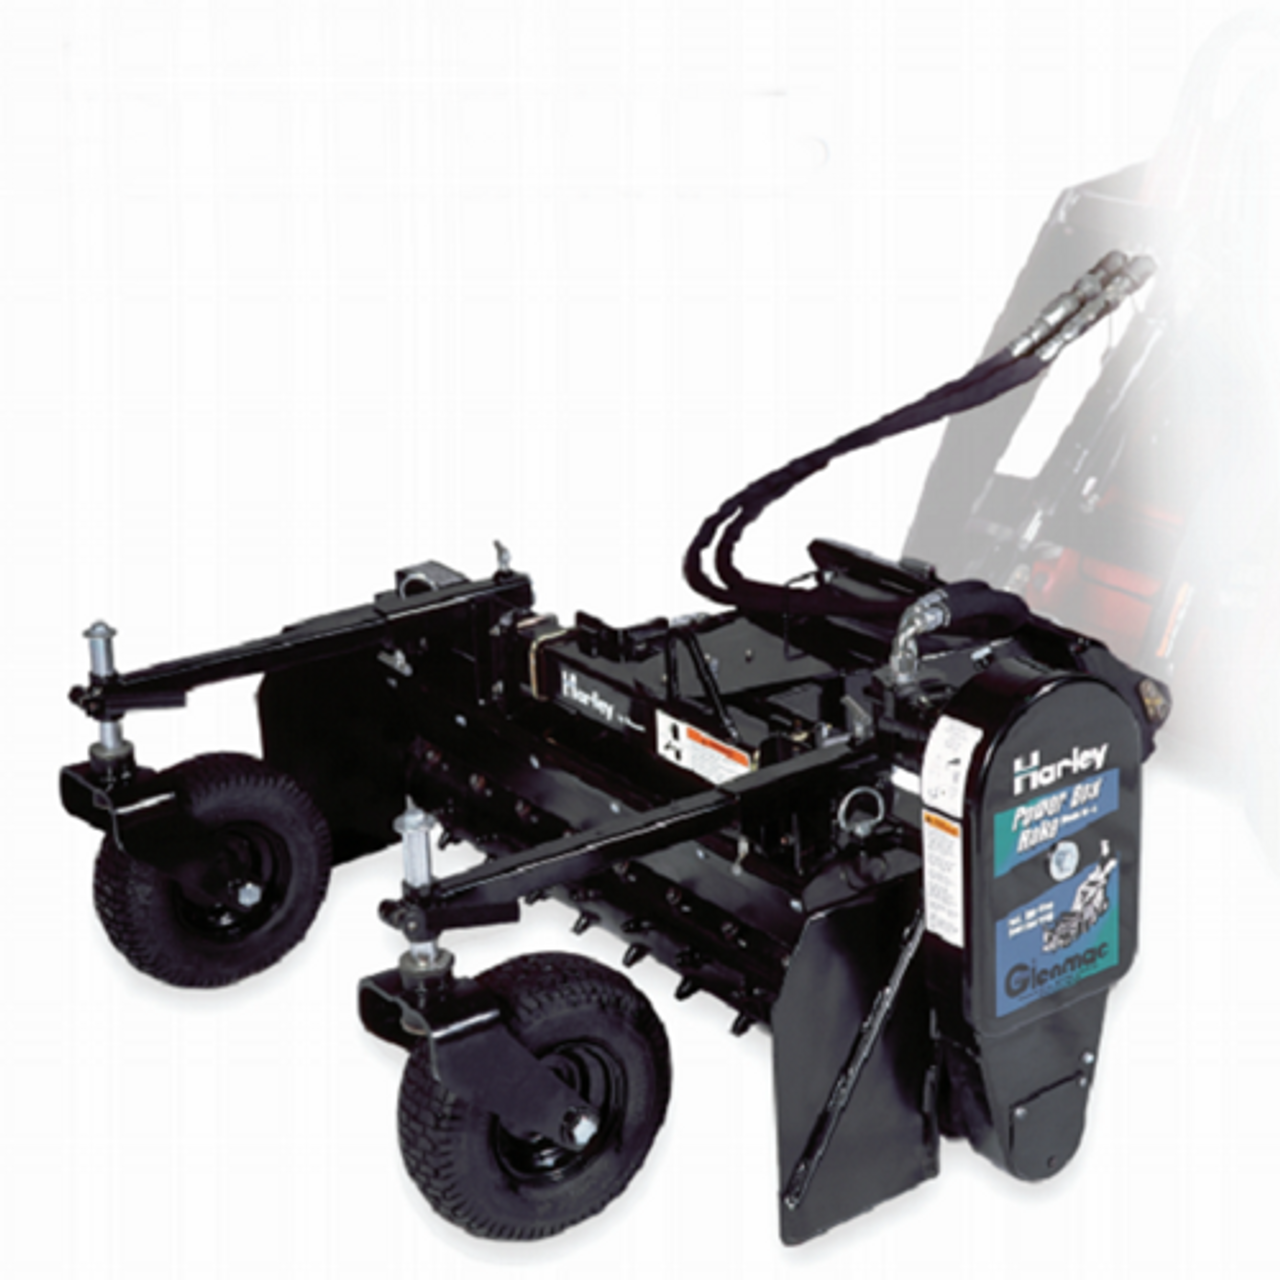 attachment harley rake landscape rake 4 39 holmes rental station